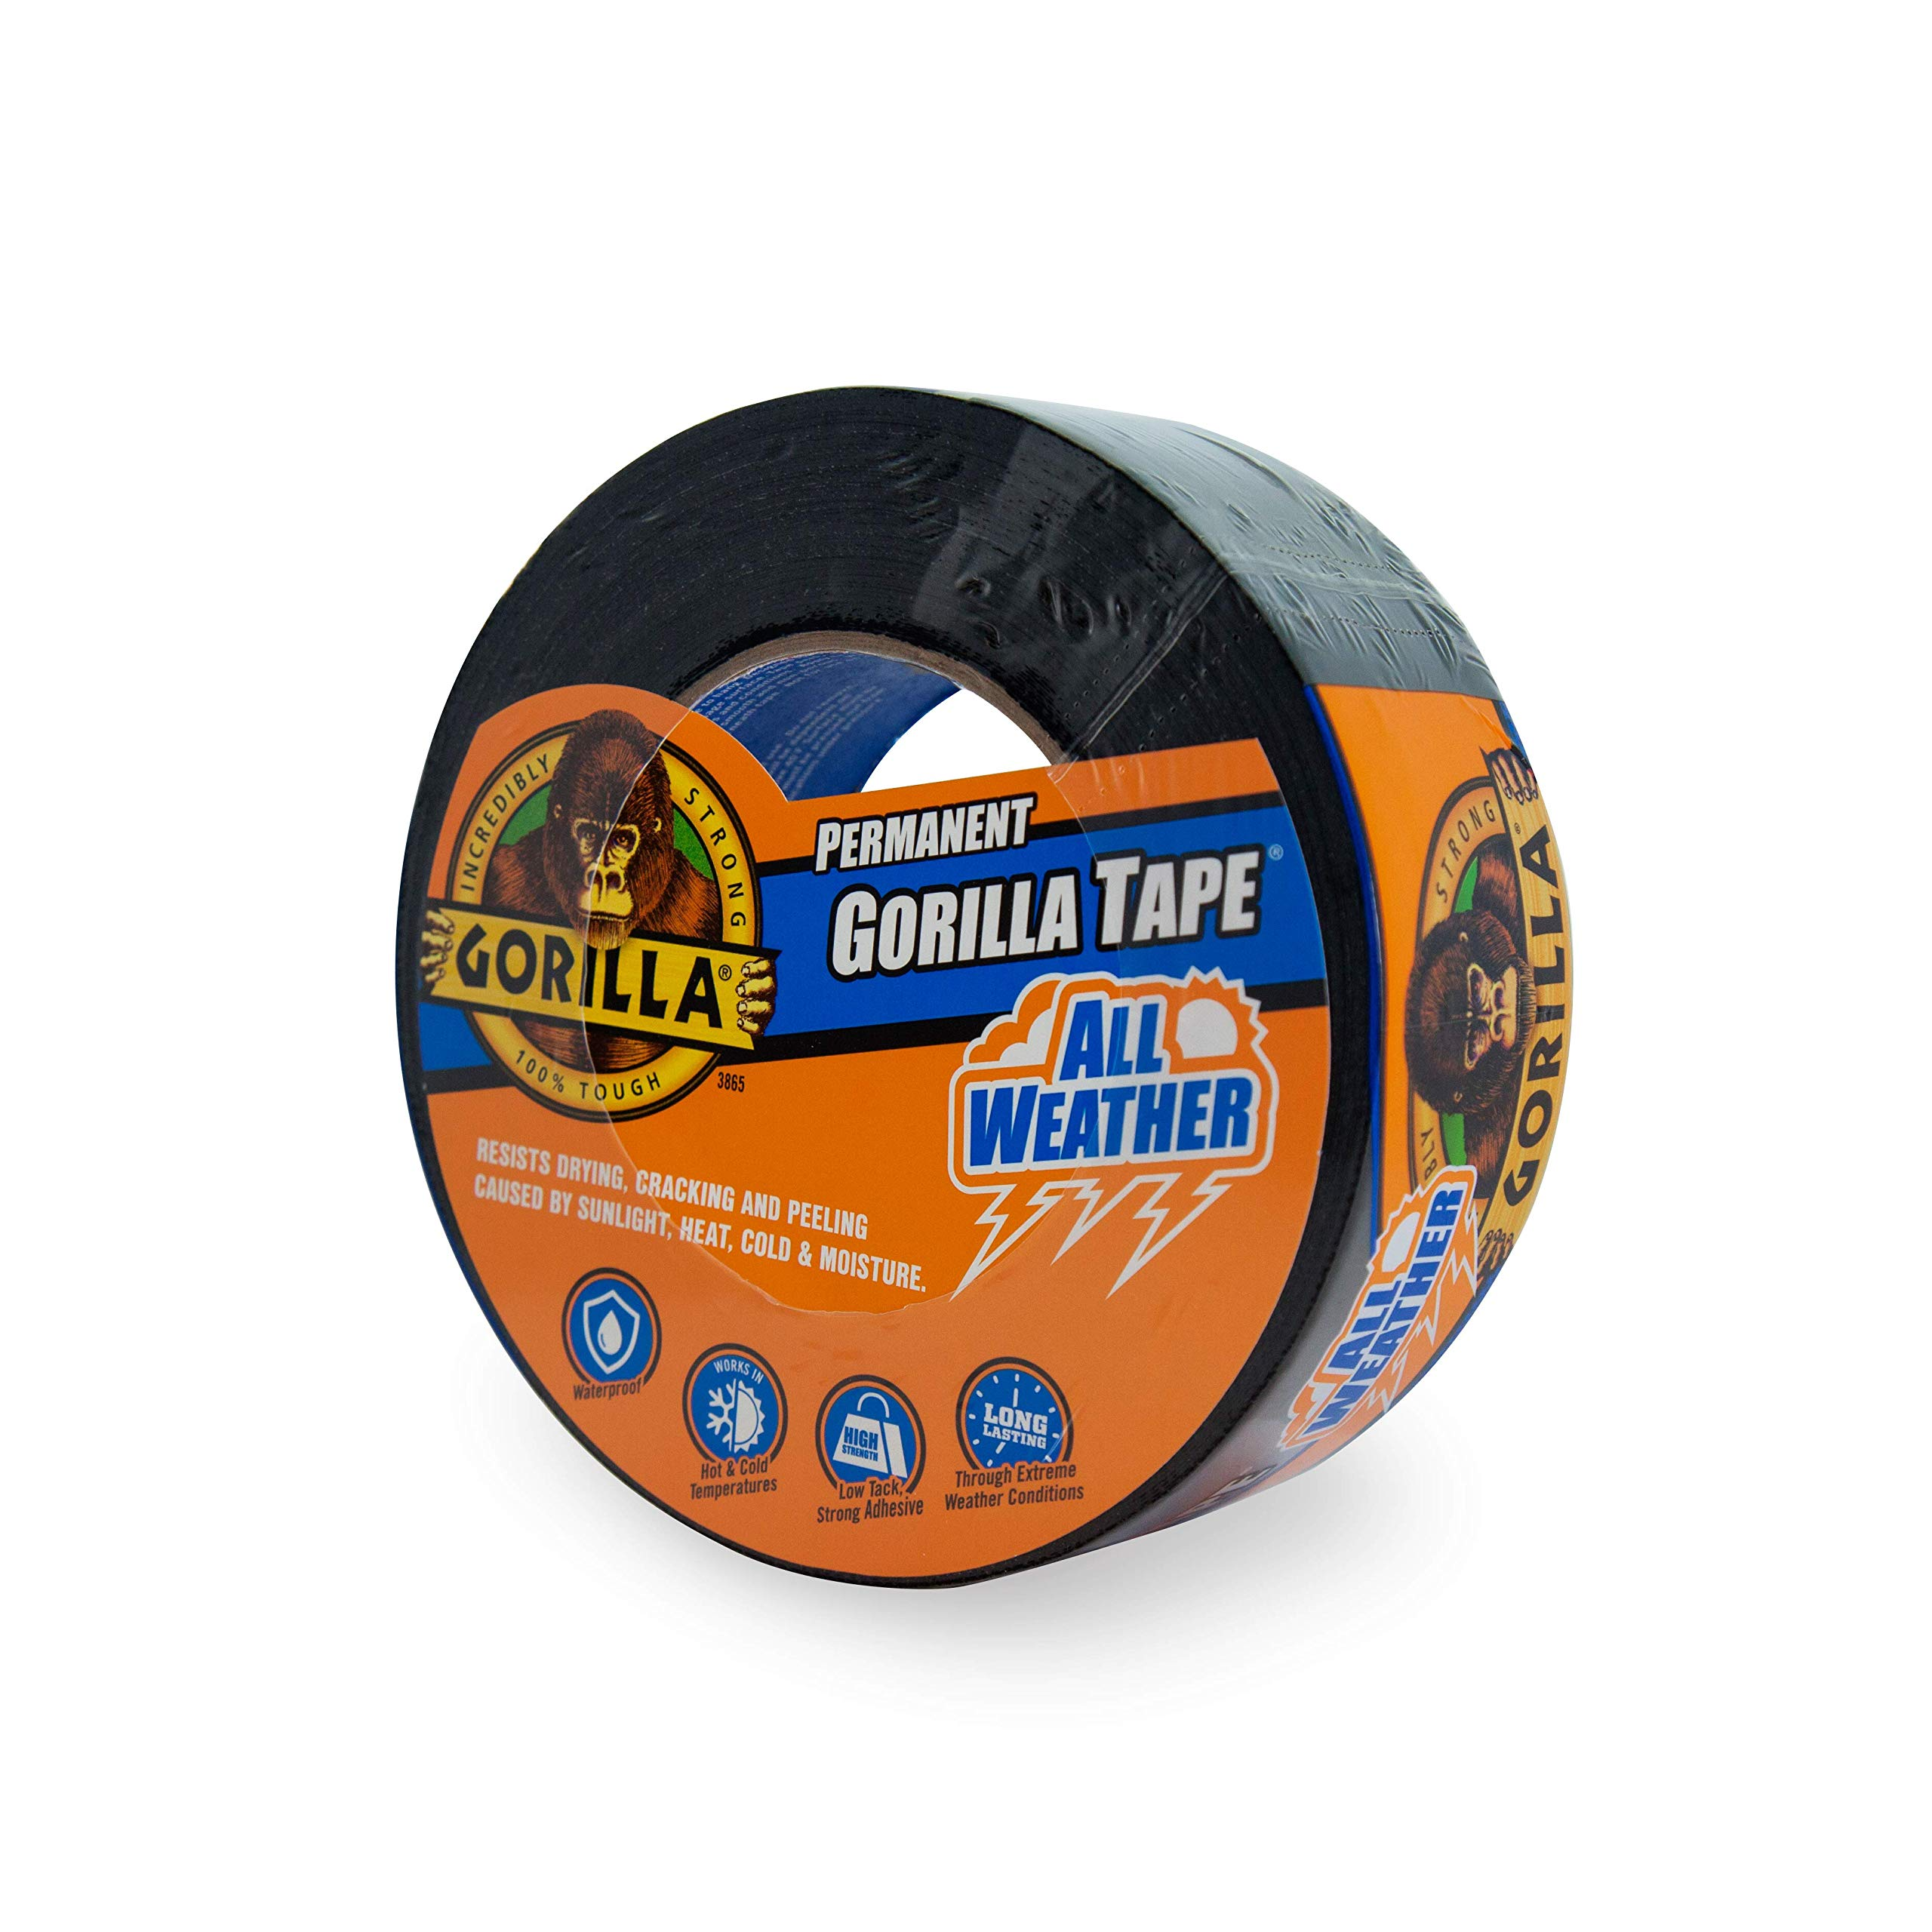 T-REX Ferociously Strong Duct Tape 1 Roll 240998 1.88 inch x 35 yd.